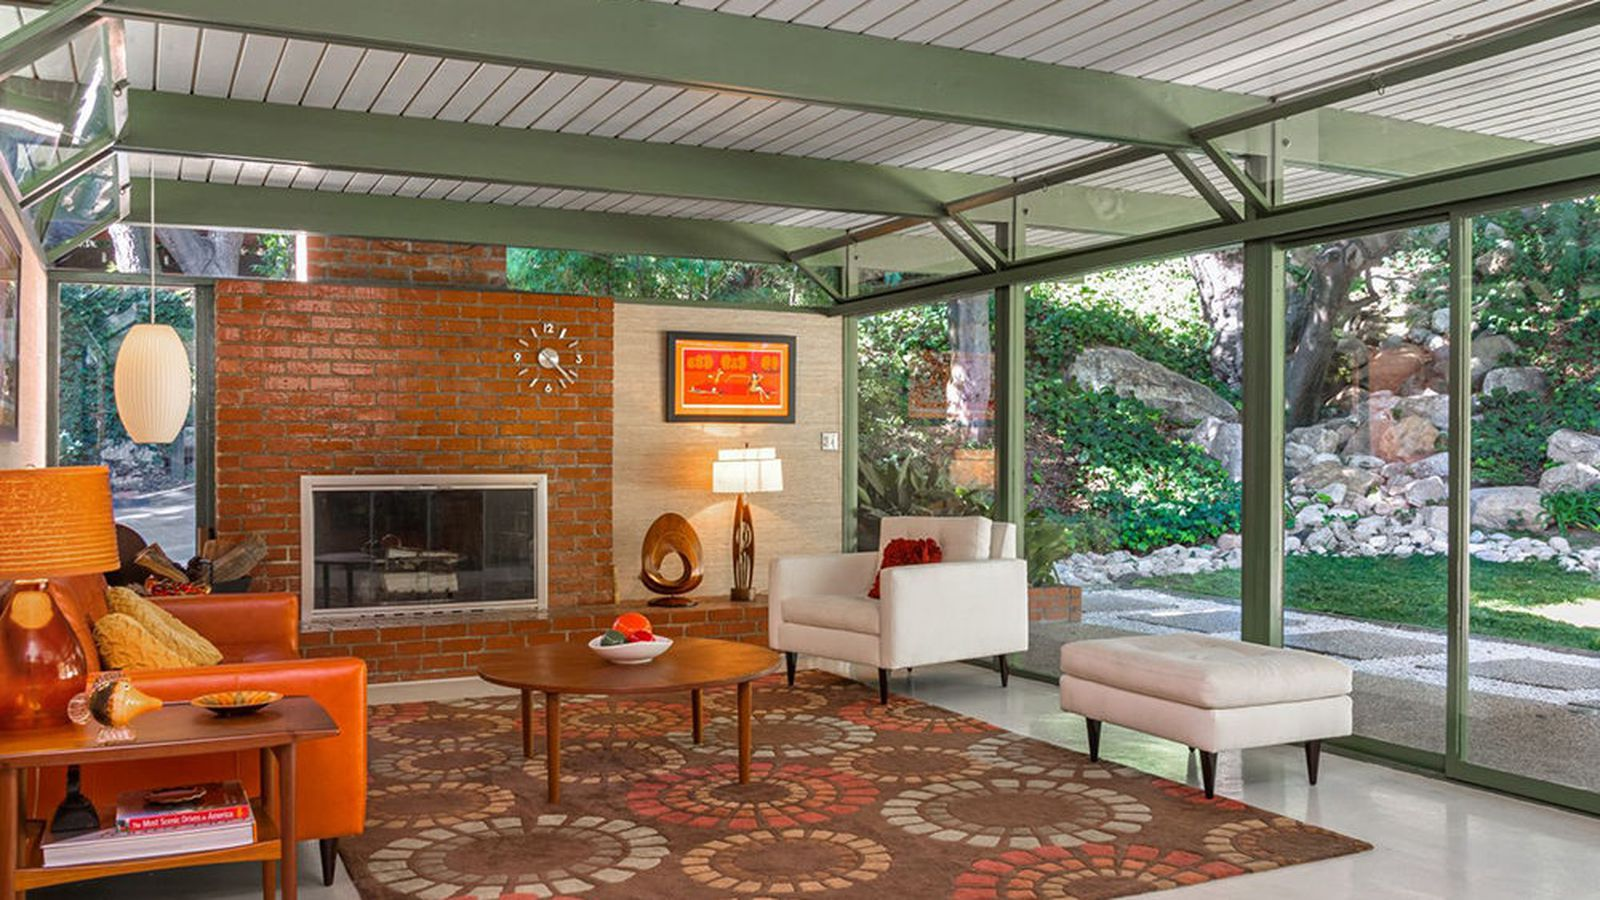 Polished Altadena Post And Beam With Pool Asks 1 175m